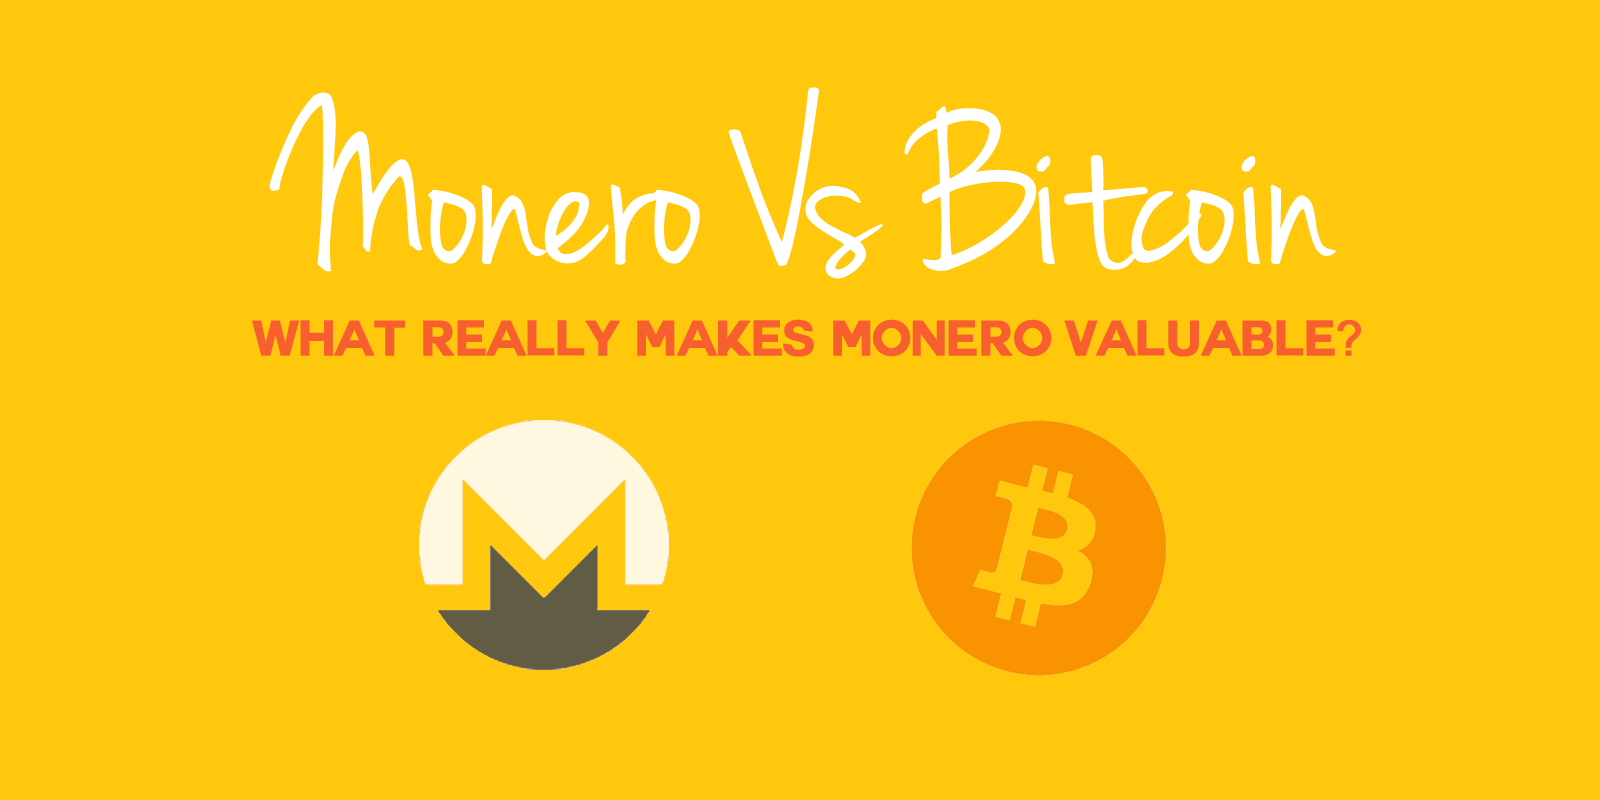 Monero Review - Monero trails Bitcoin in value and market cap